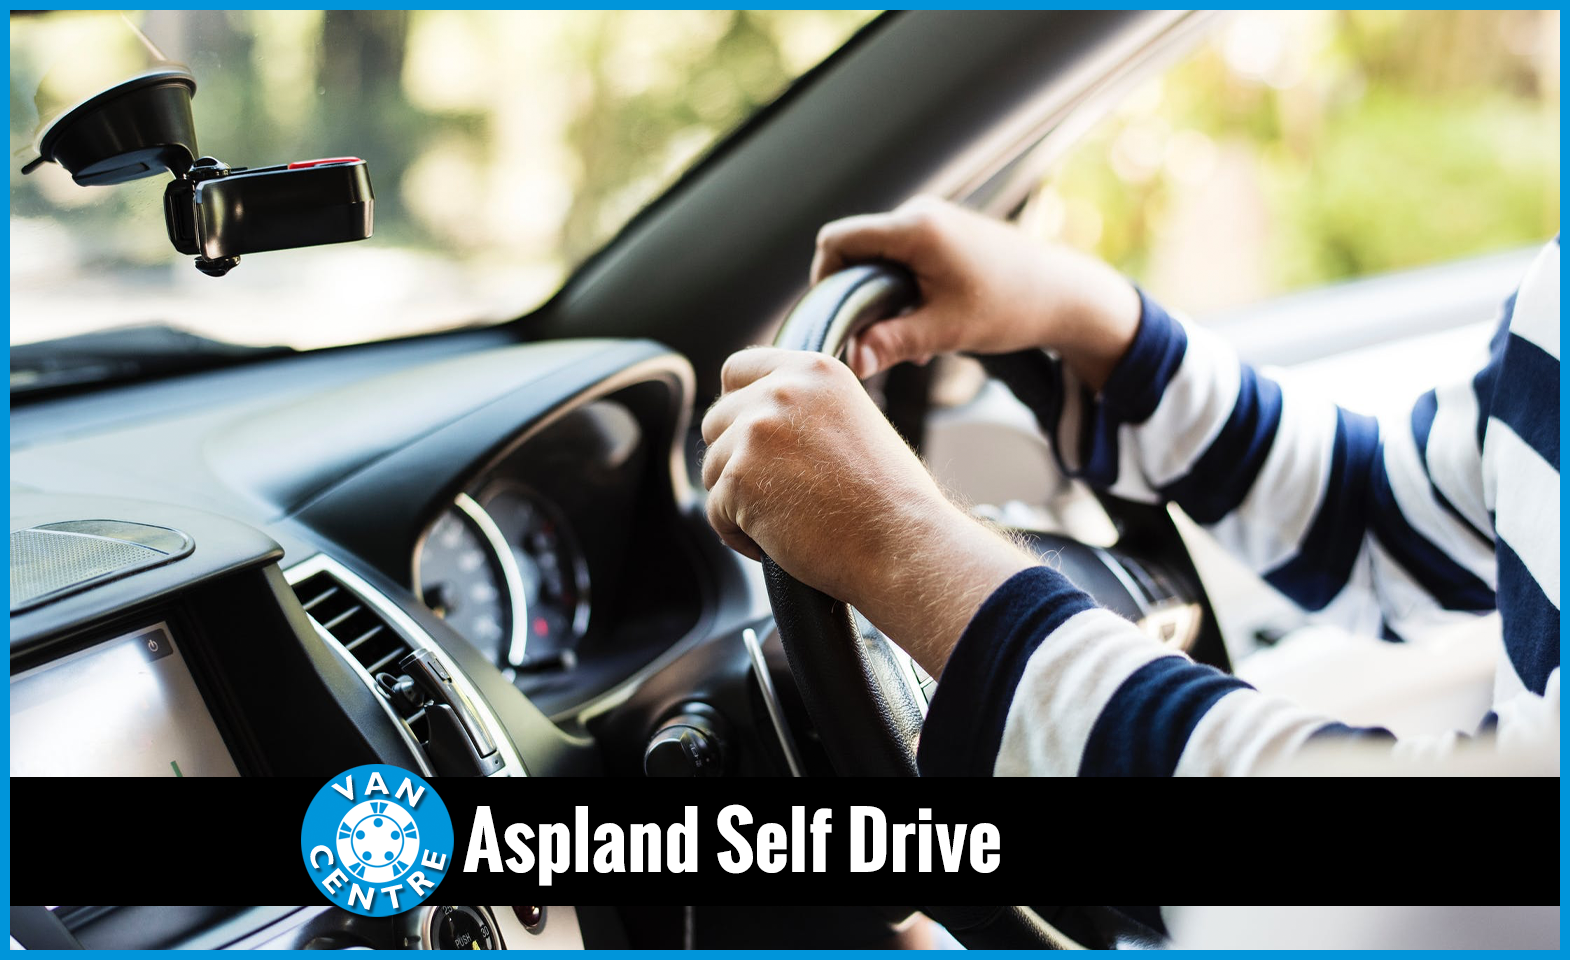 The minimum age to drive our vehicles | Aspland Self Drive, Norwich